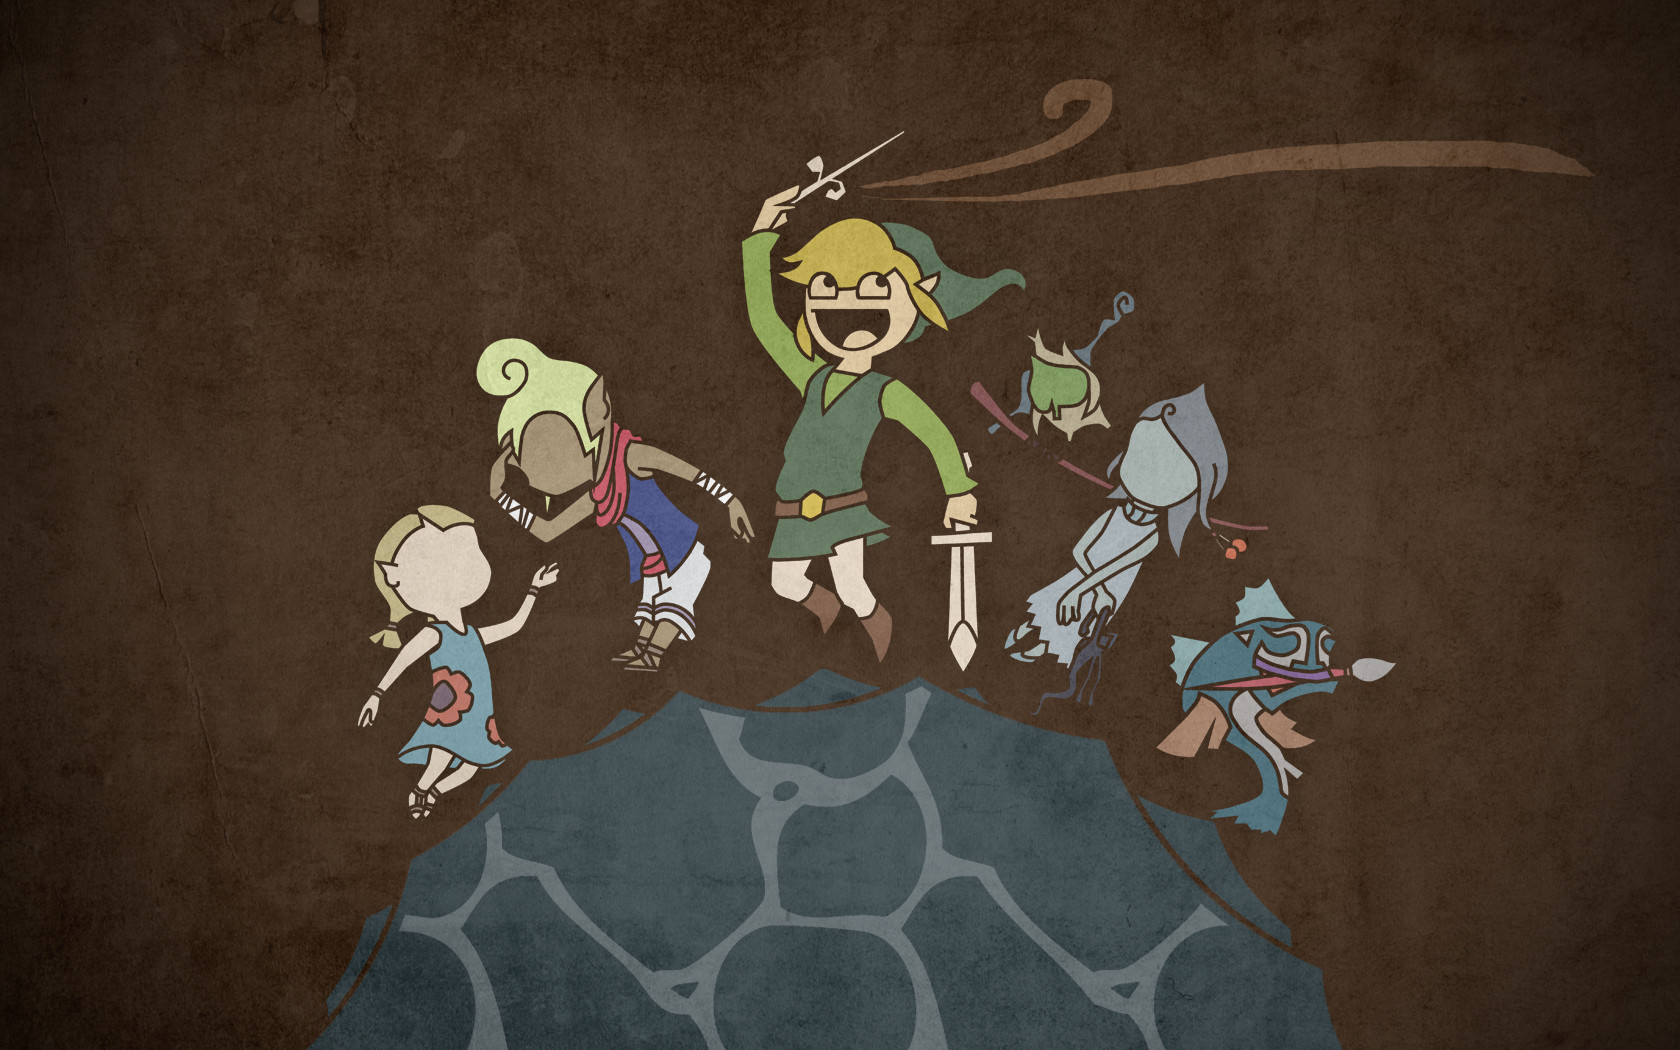 An Awesome Zelda Wallpaper I Designed A While Back [X Post from 1680x1050